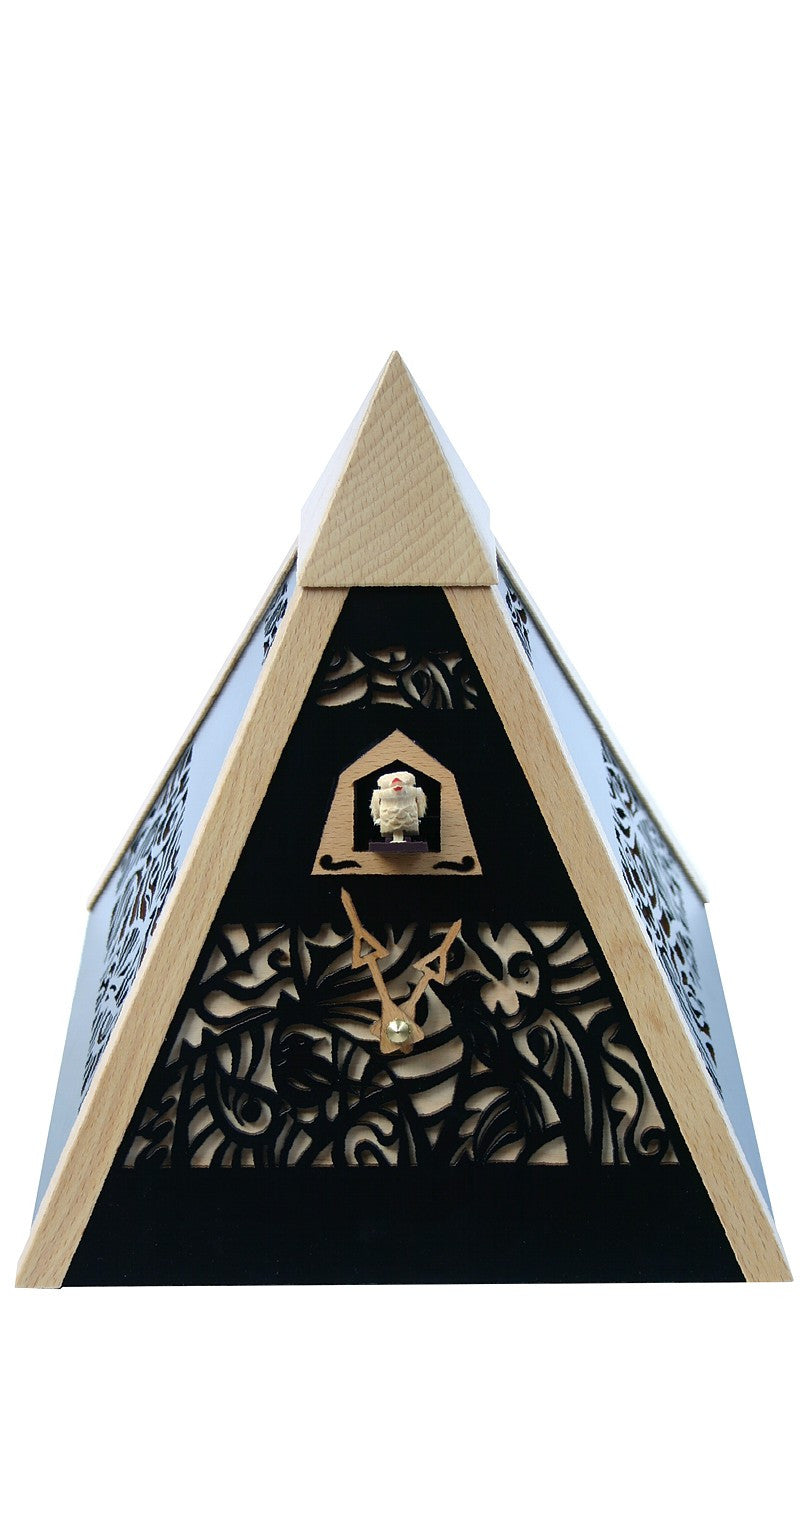 Modern Quartz Pyramid Cuckoo Clock in Black - Cuckoo Clock Meister